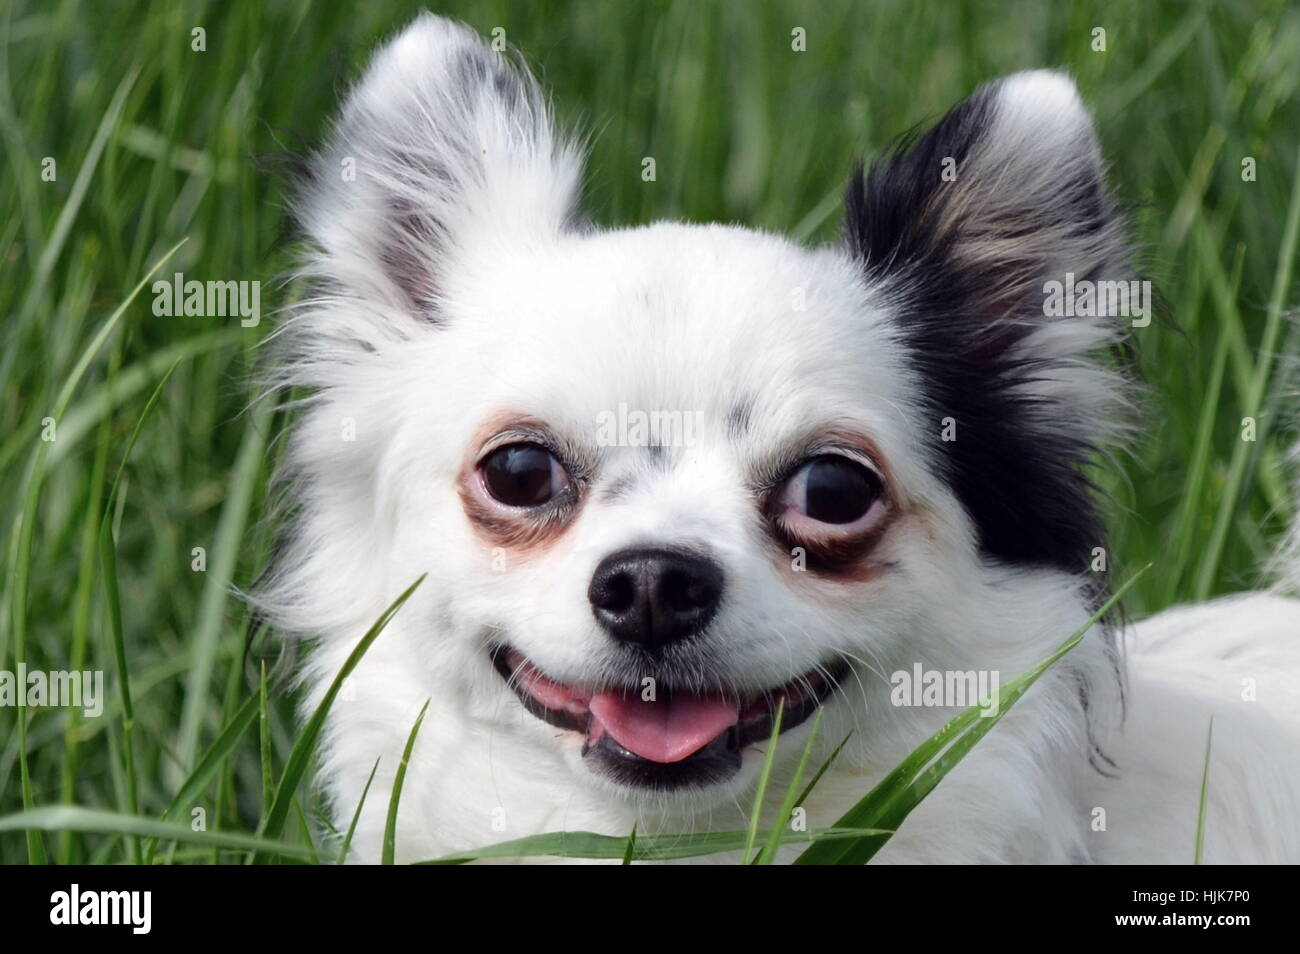 chihuahua in the grass - Stock Image